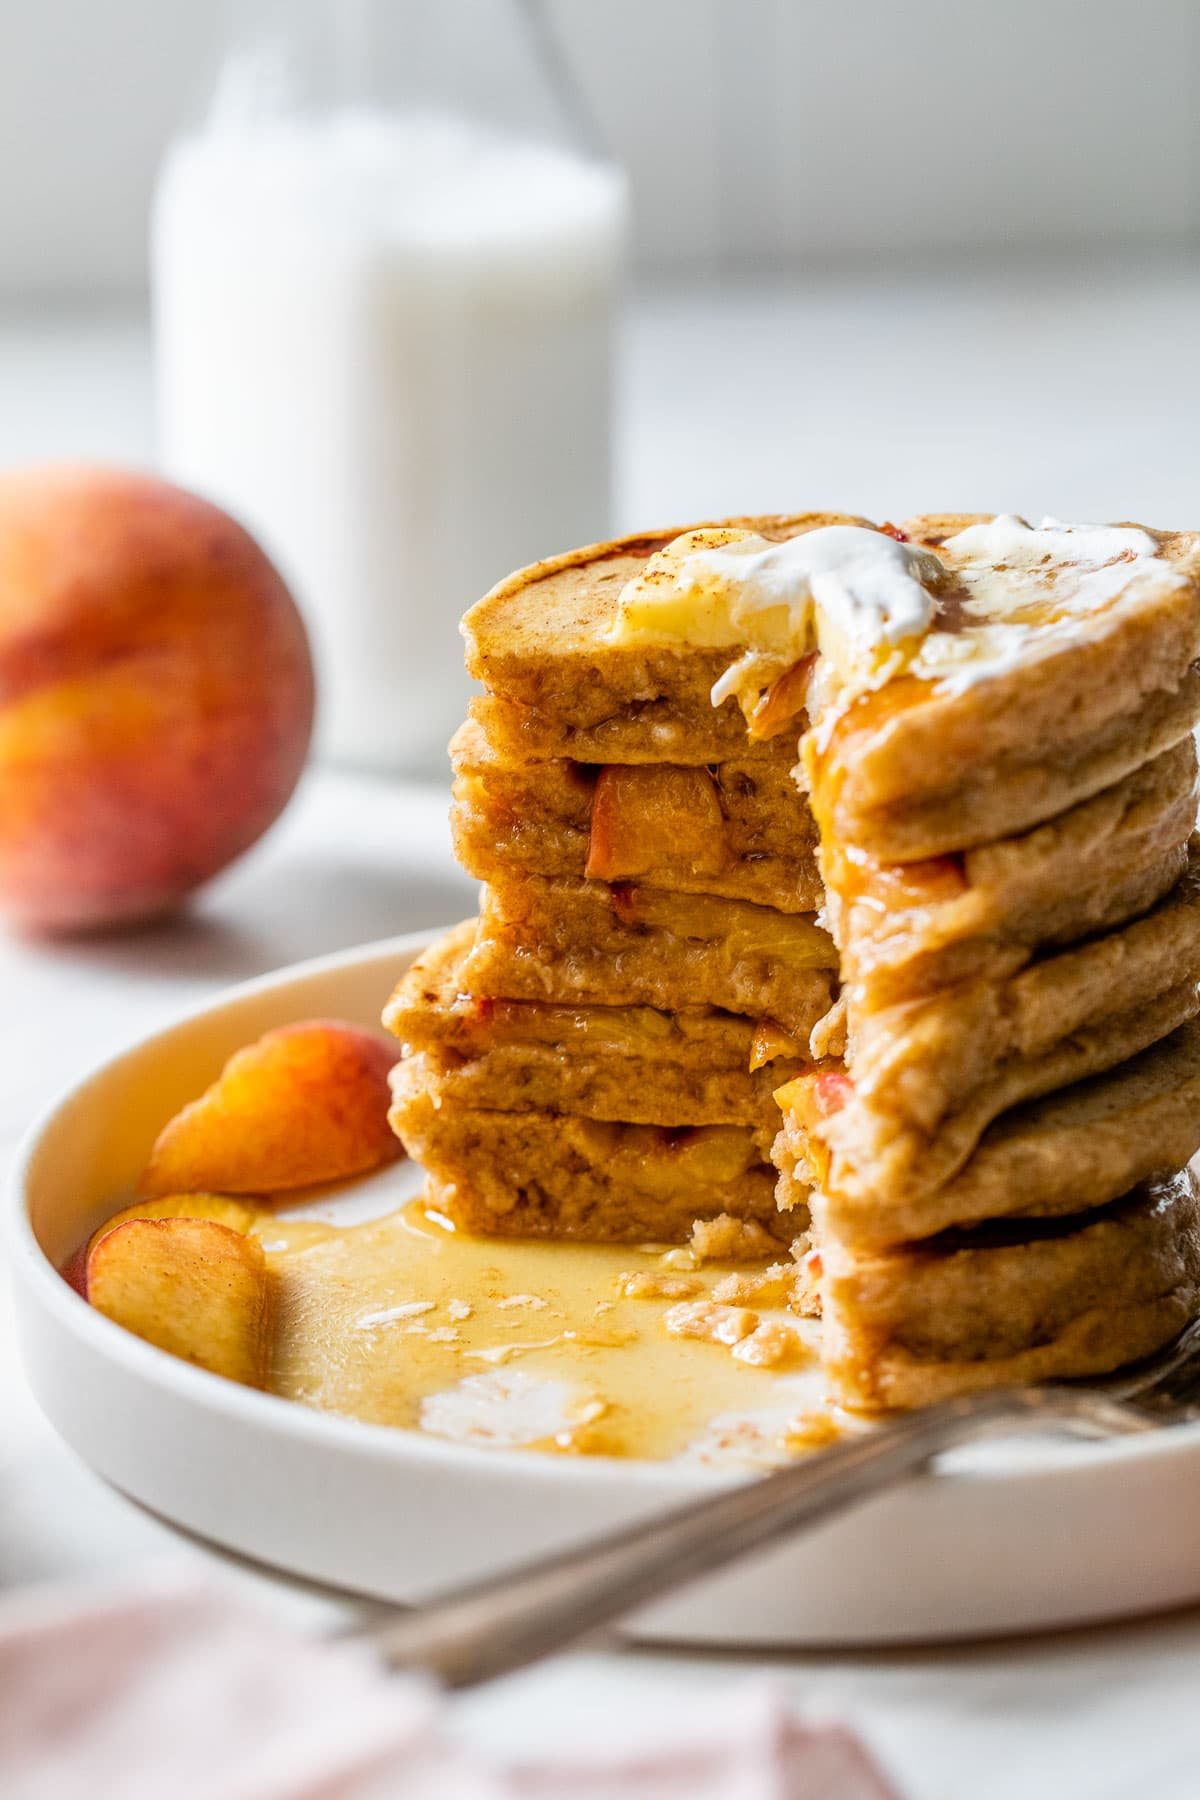 caramelized peach pancakes with a bite cut out